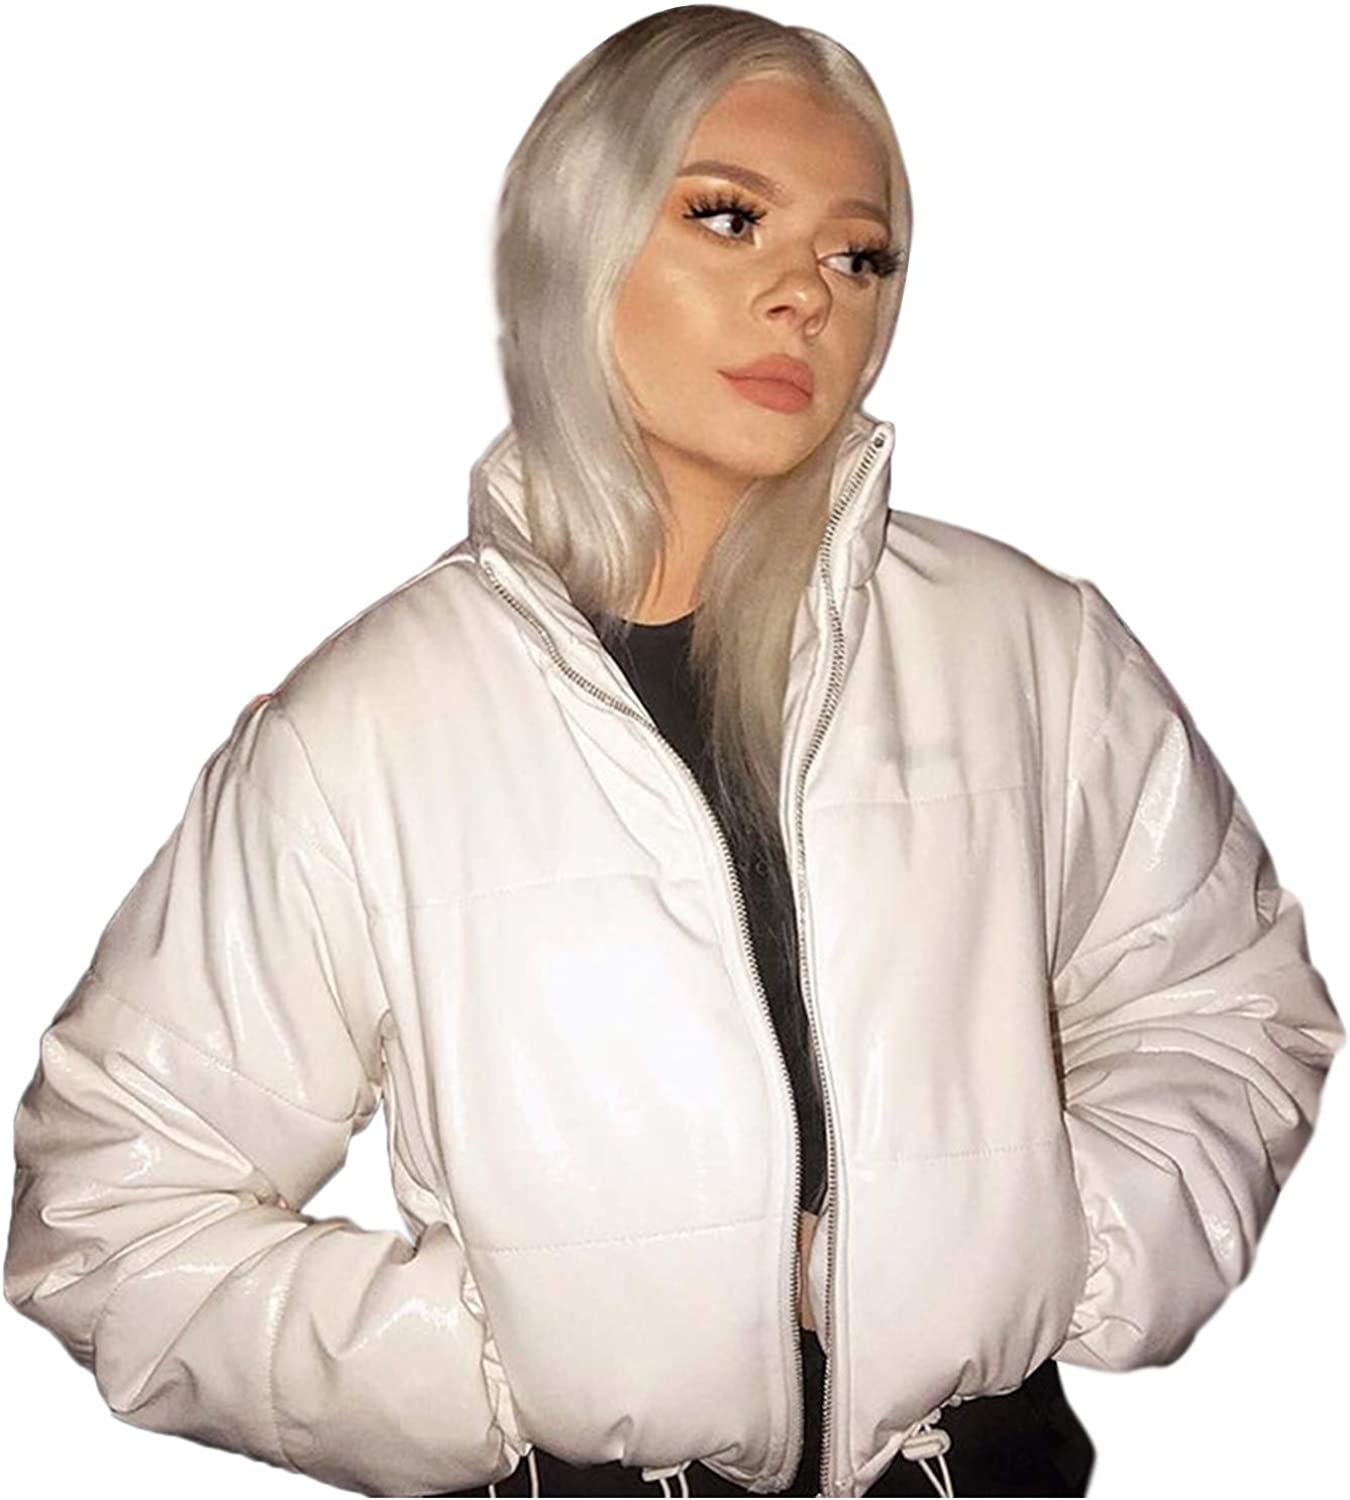 Winter Coats for Women Zip-up Cropped Puffer Jackets Coat Quilted Lightweight Padding Jacket Baseball Bomber